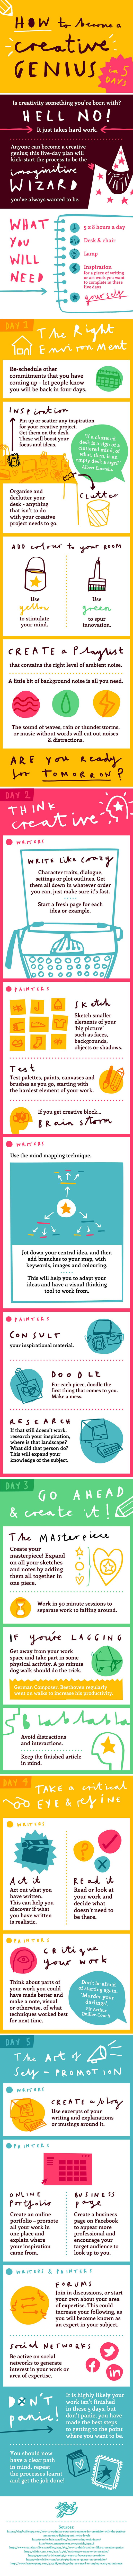 How to be a creative genius in 5 days